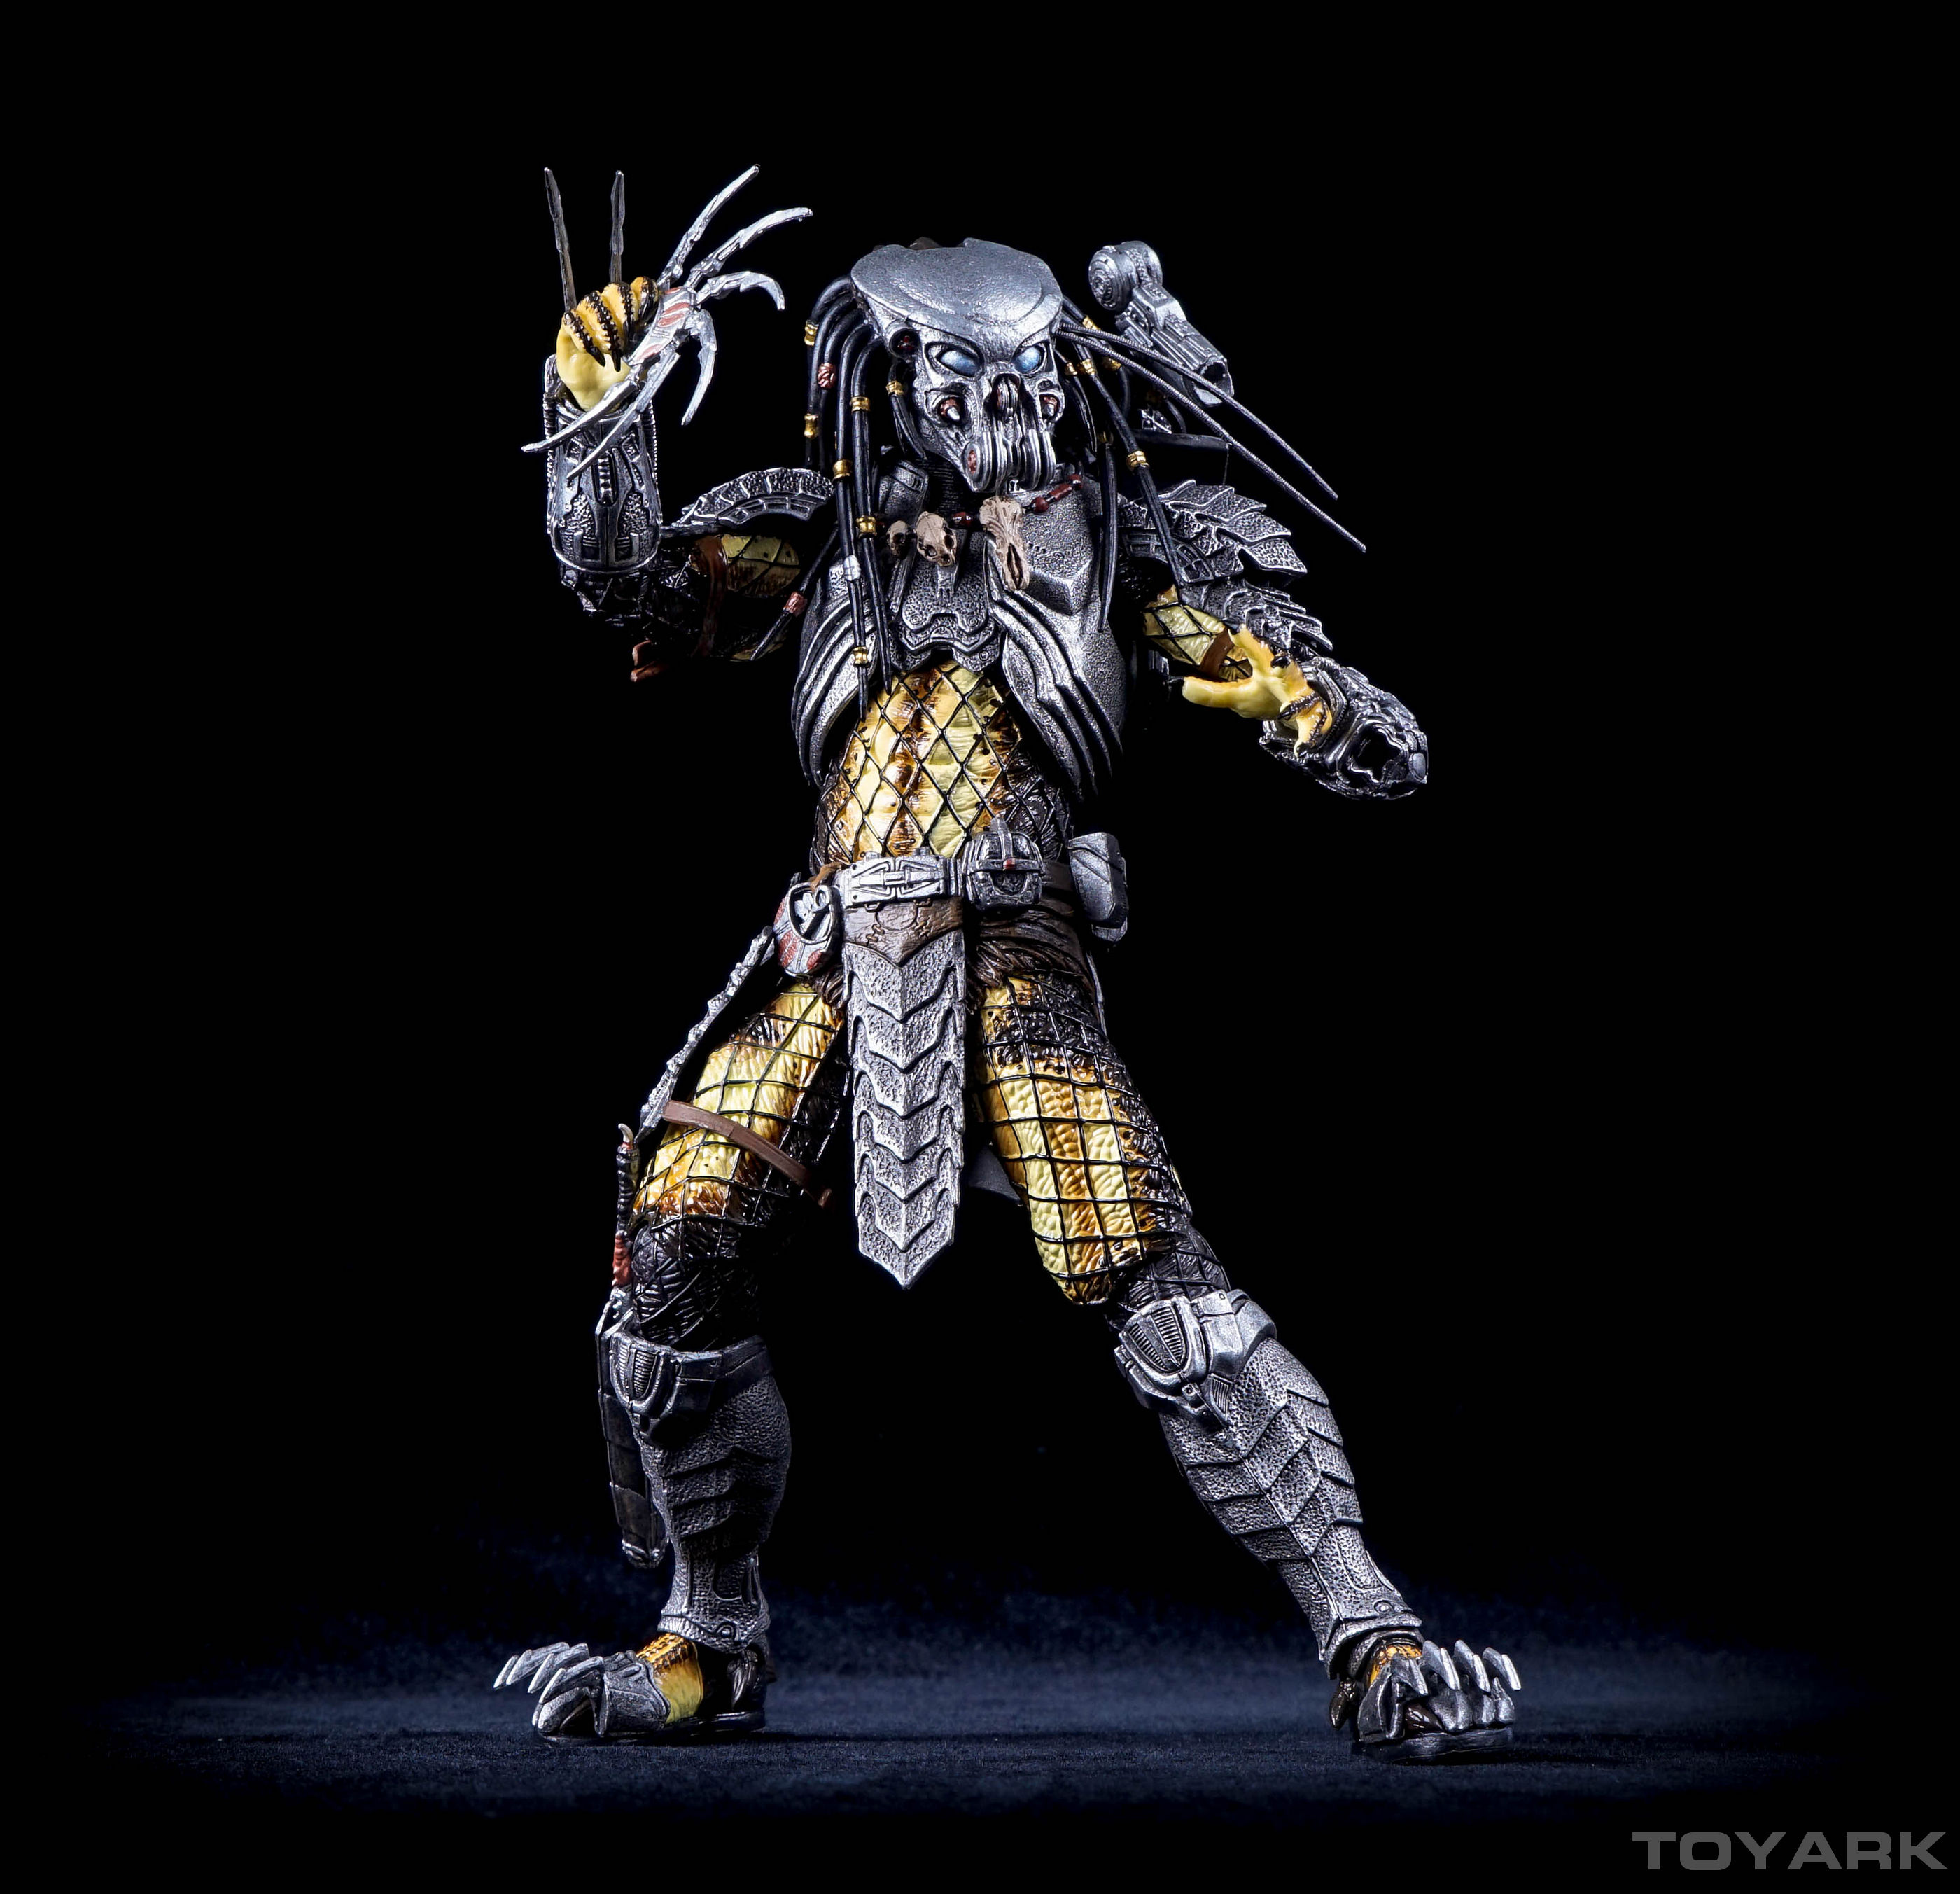 http://news.toyark.com/wp-content/uploads/sites/4/2015/12/NECA-AvP-Celtic-Predator-025.jpg